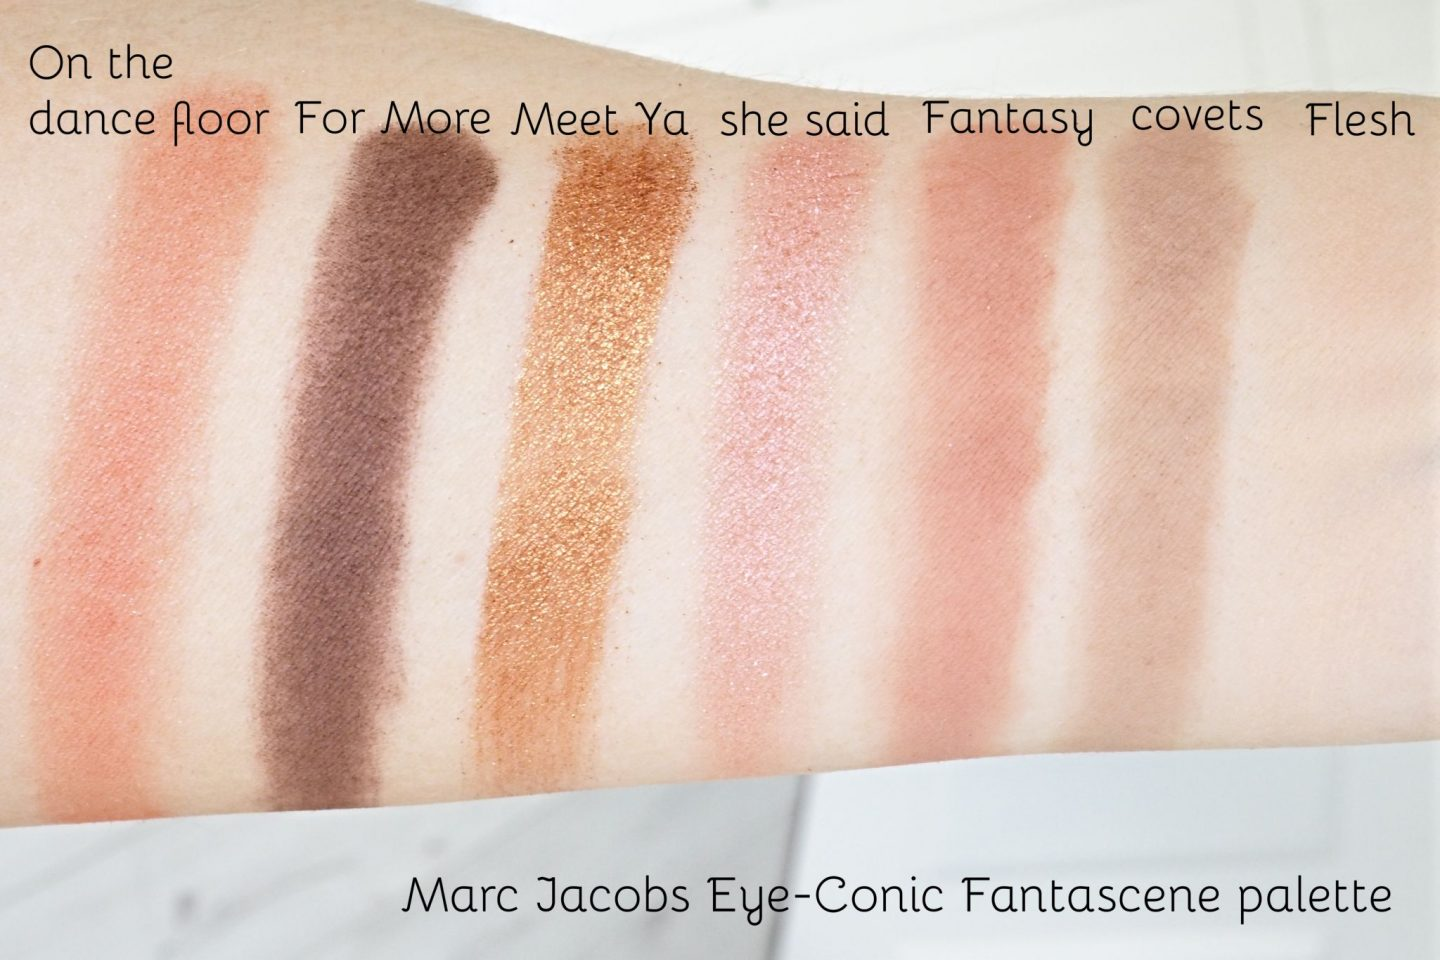 Marc Jacobs Fantascene Palette swatches